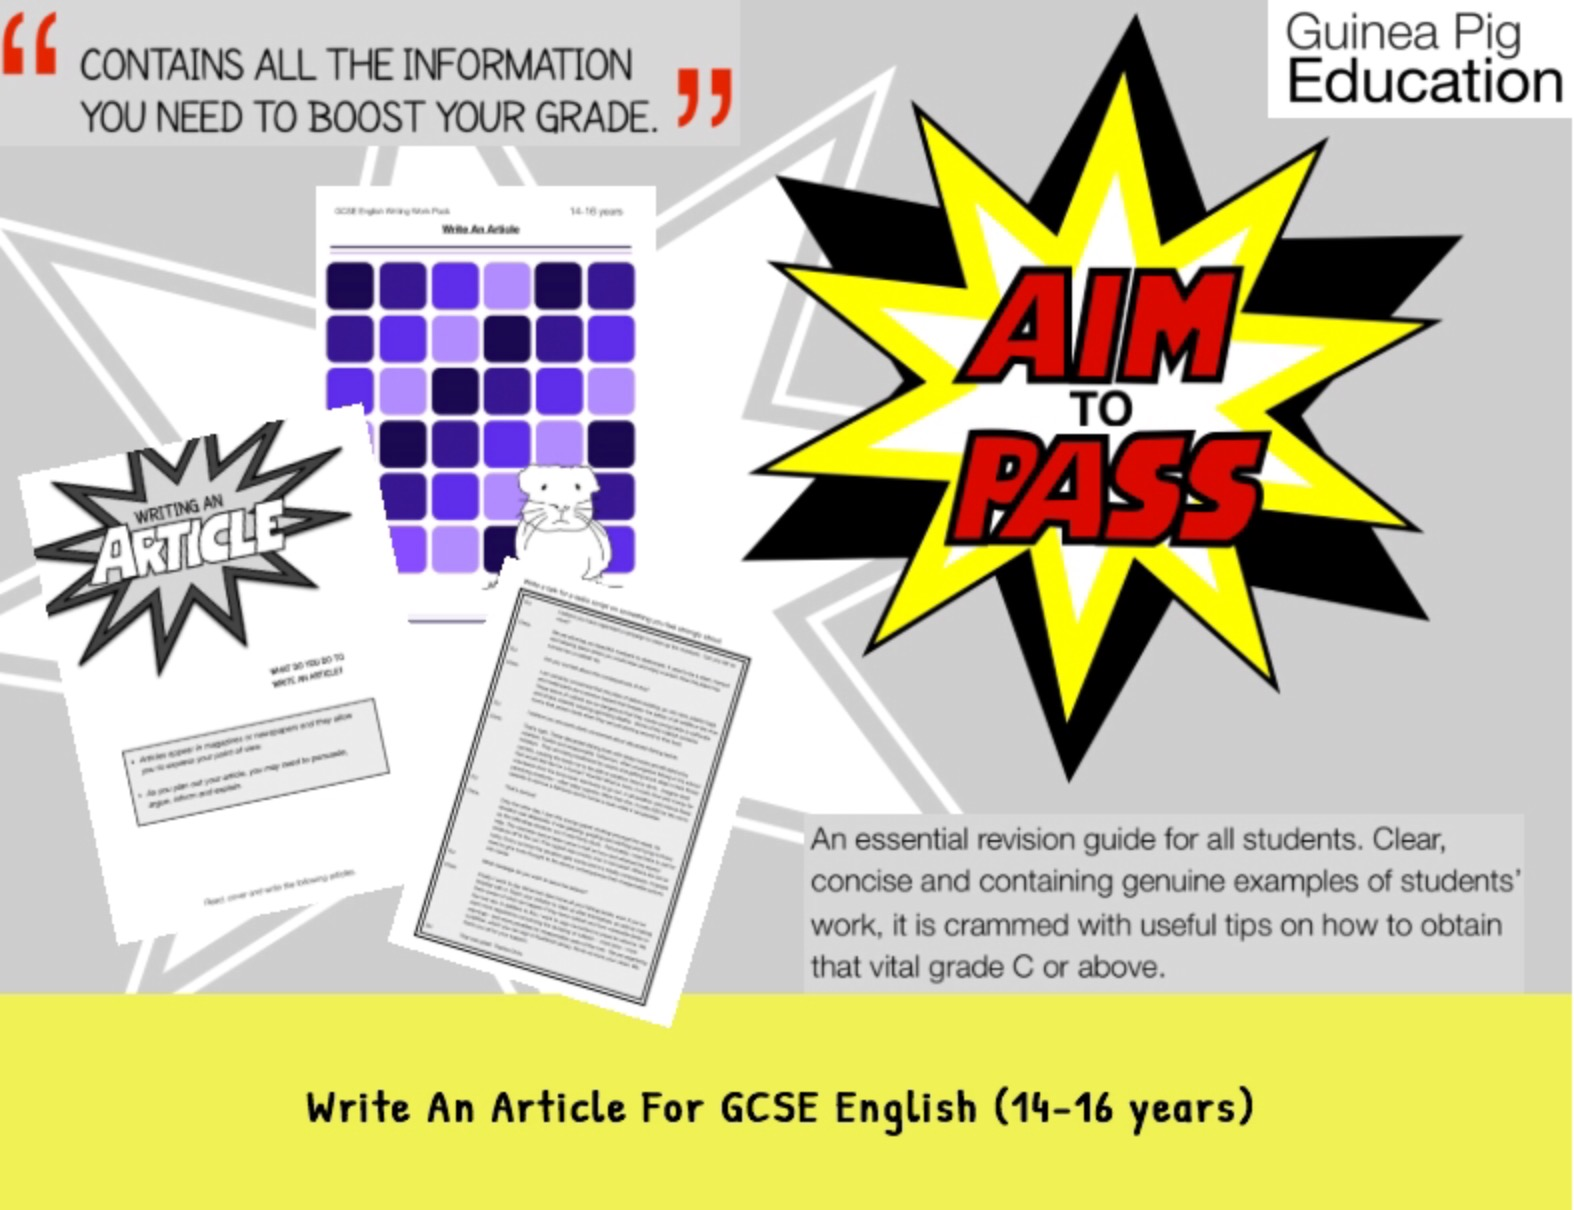 Write An Article (Improve Your Grades At GCSE) (14-16 years)